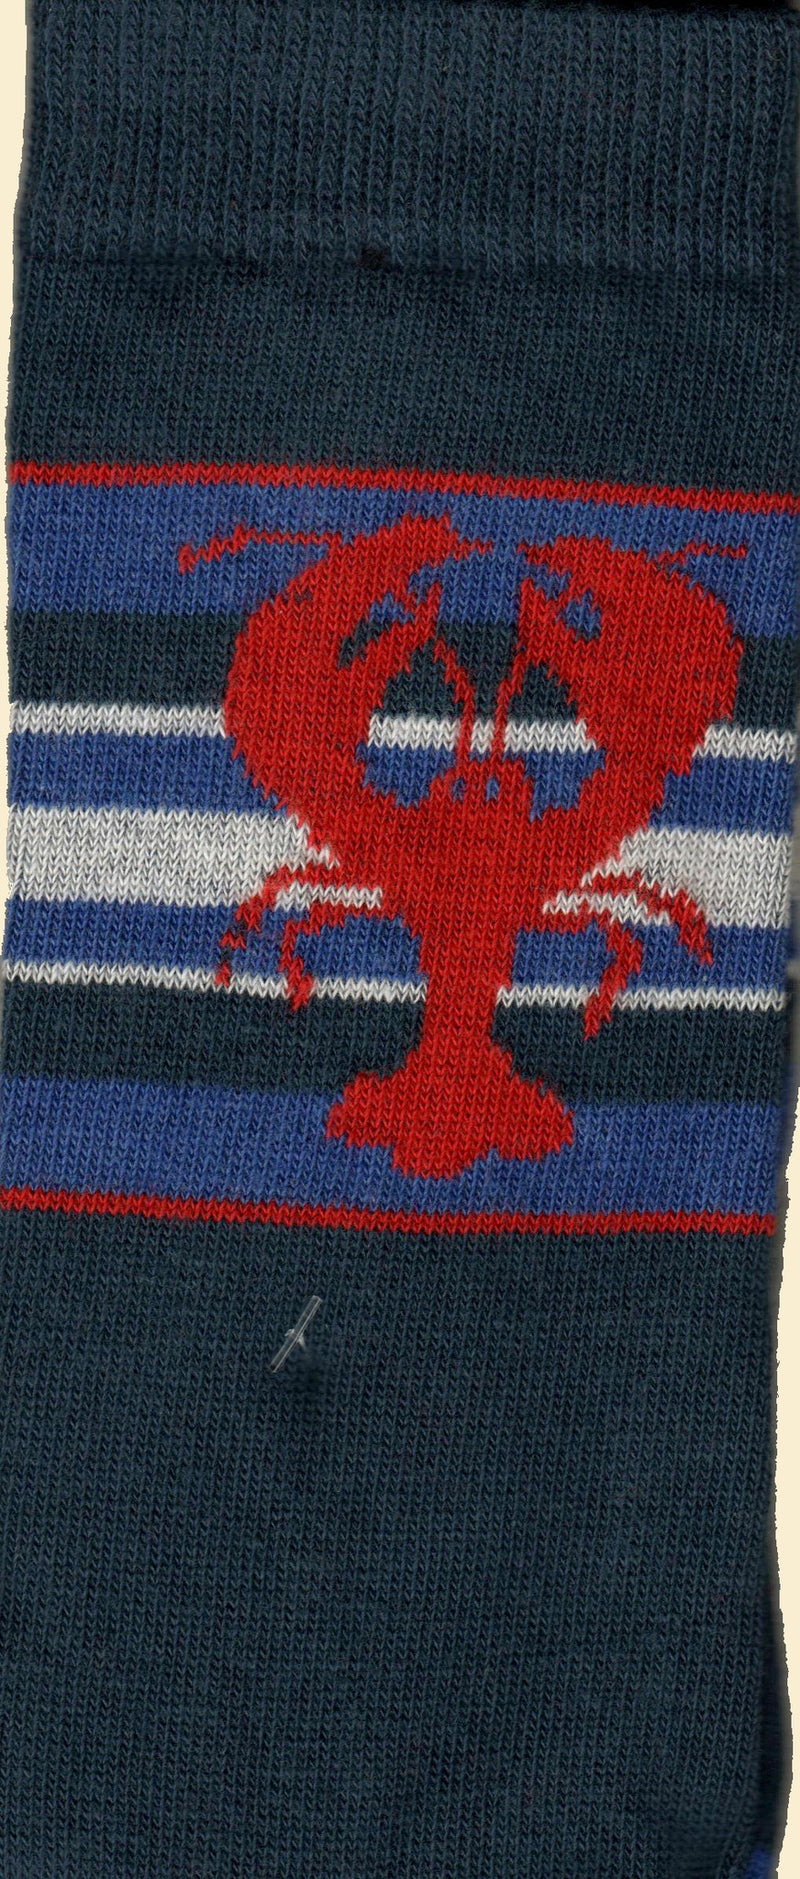 This is a Scan of the Lobster Sock showing the real white, blues and red